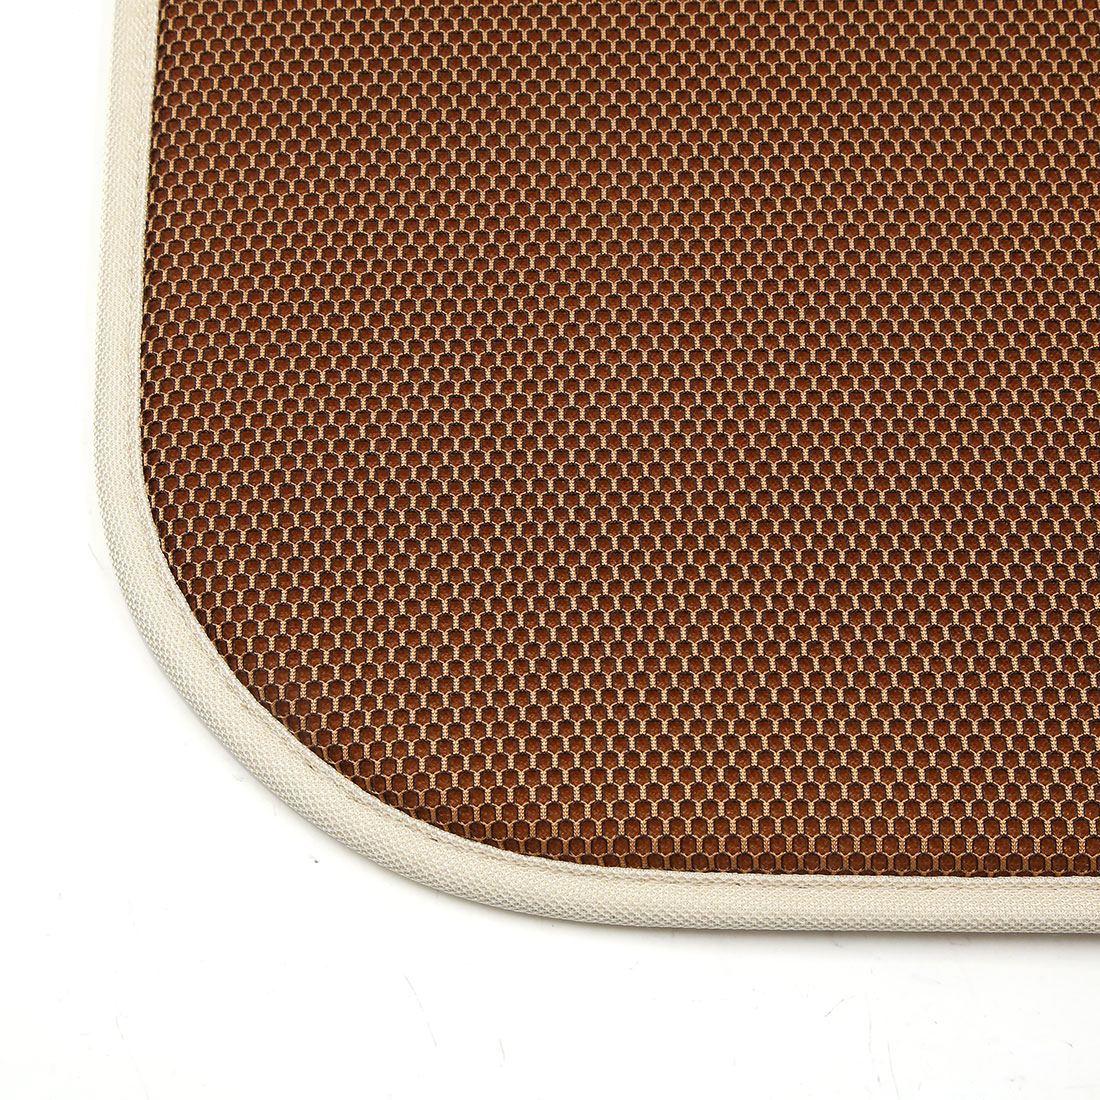 Universal Coffee Color Square Shaped Breathable Mesh Design Car Seat Cushion Mat - image 1 of 3